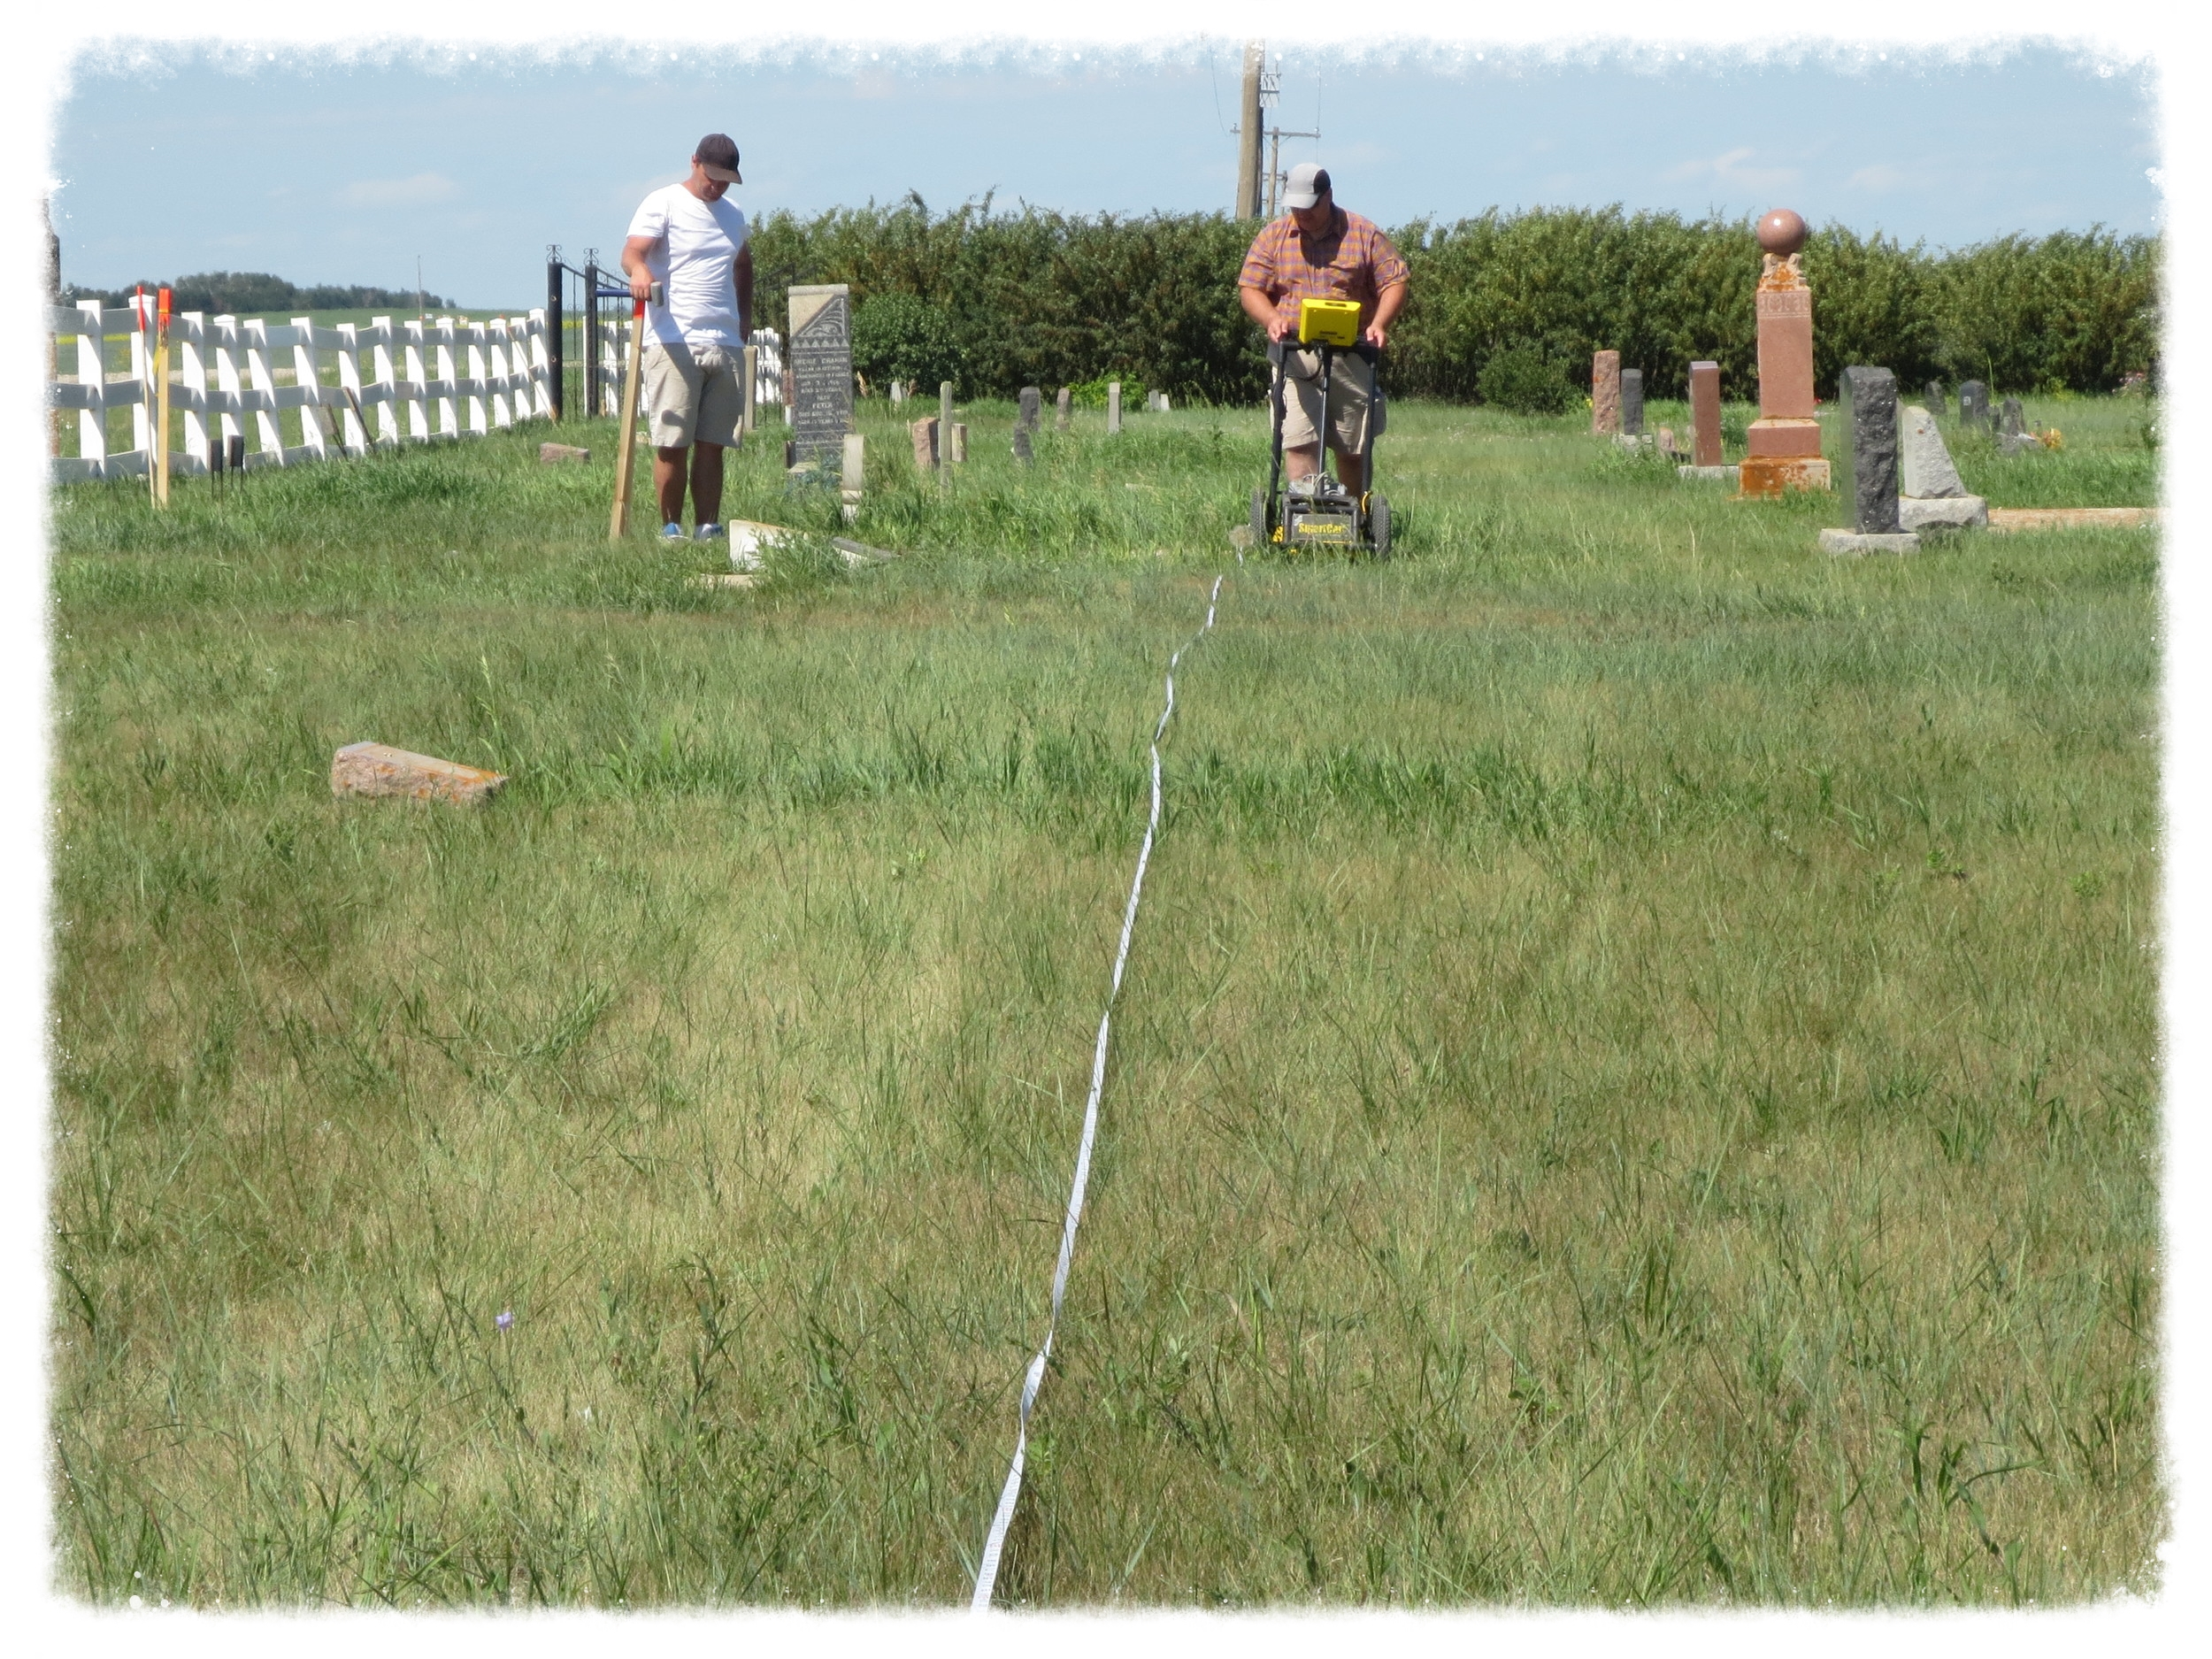 Identifying unmarked graves using a Ground Penetrating Radar.